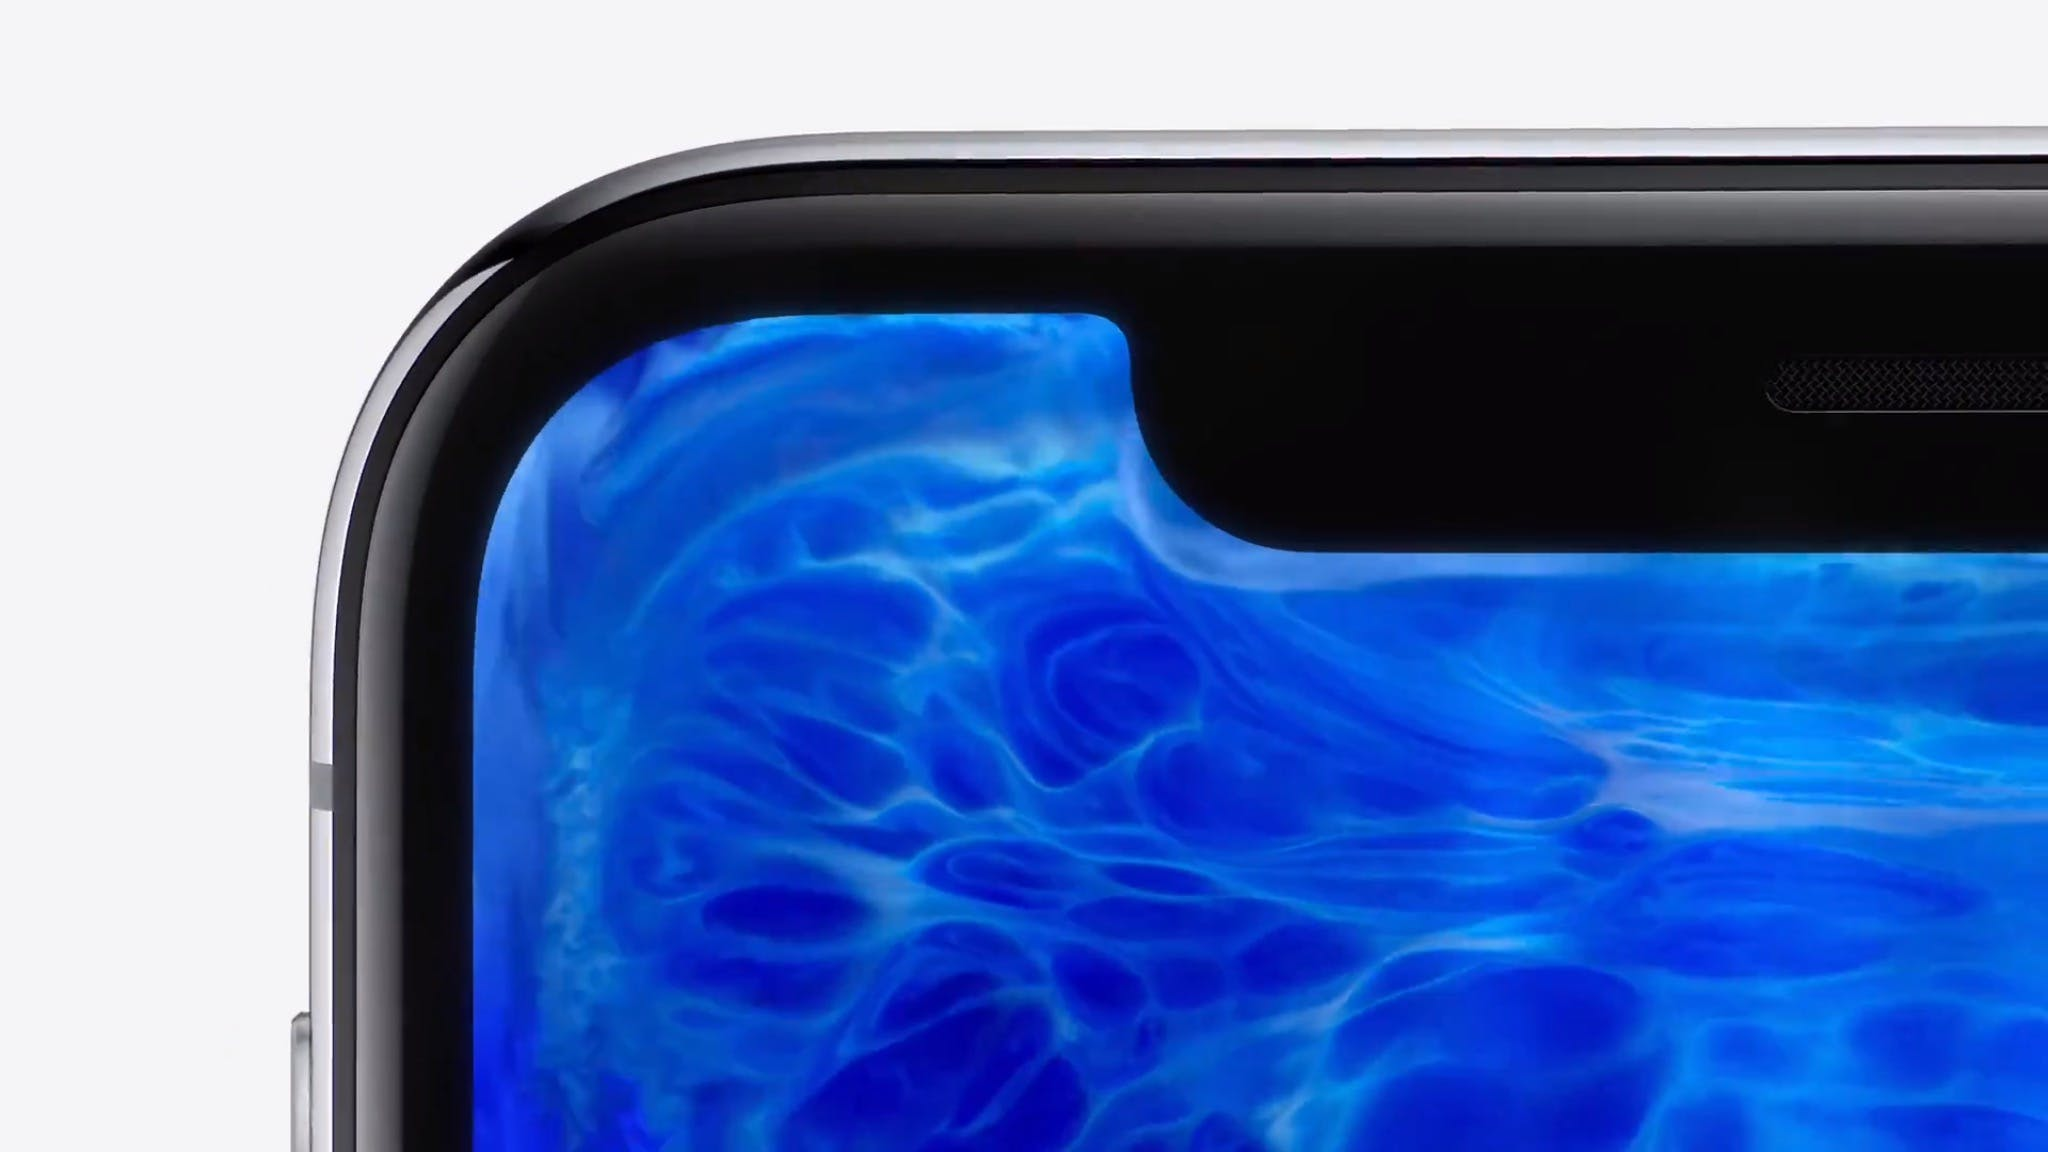 Fotos de stock gratuitas de apple, iphone, iPhone X, móvil